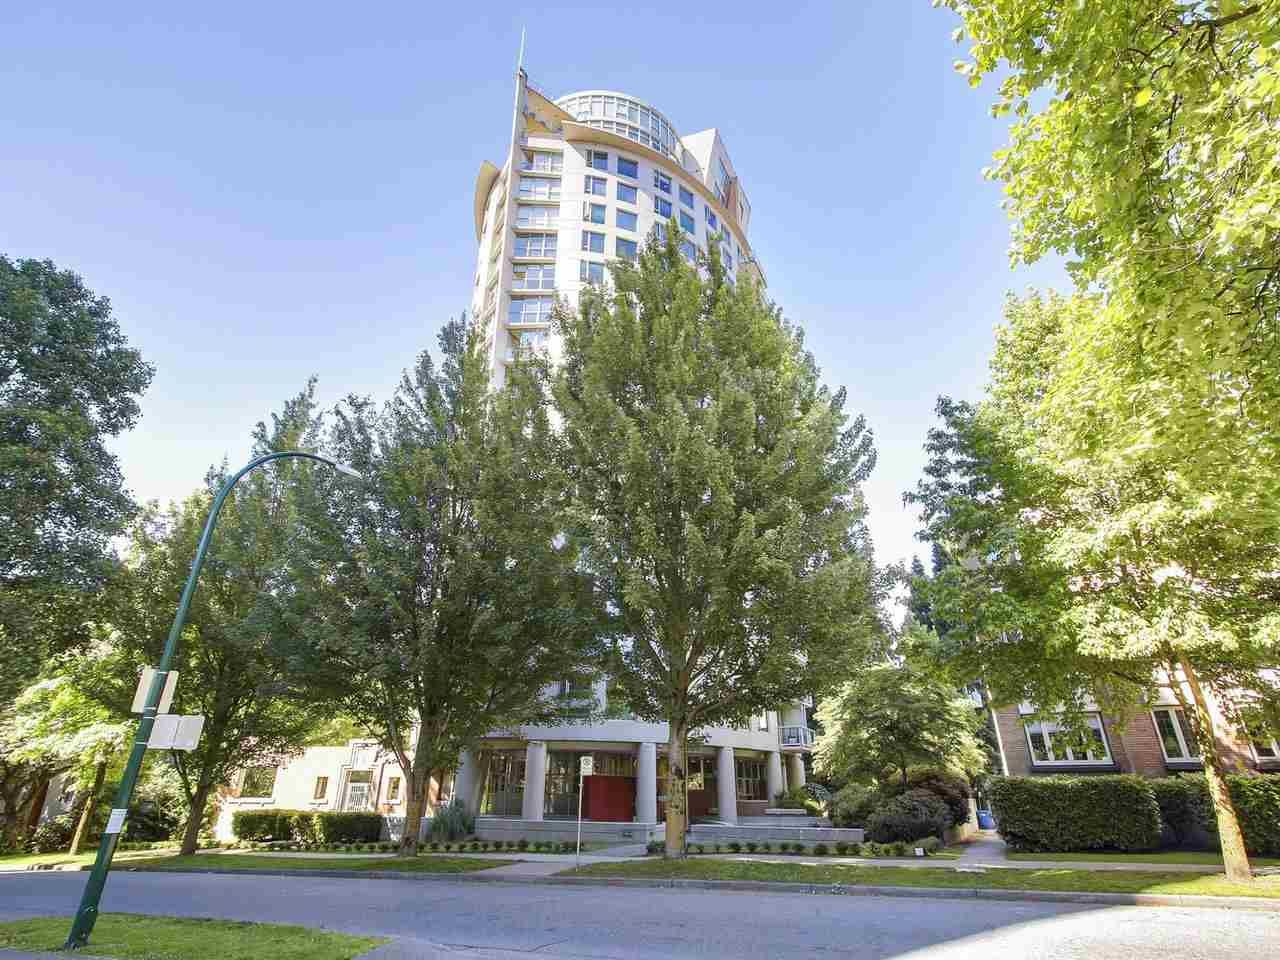 Main Photo: 907 1277 NELSON STREET in Vancouver: West End VW Condo for sale (Vancouver West)  : MLS®# R2181680